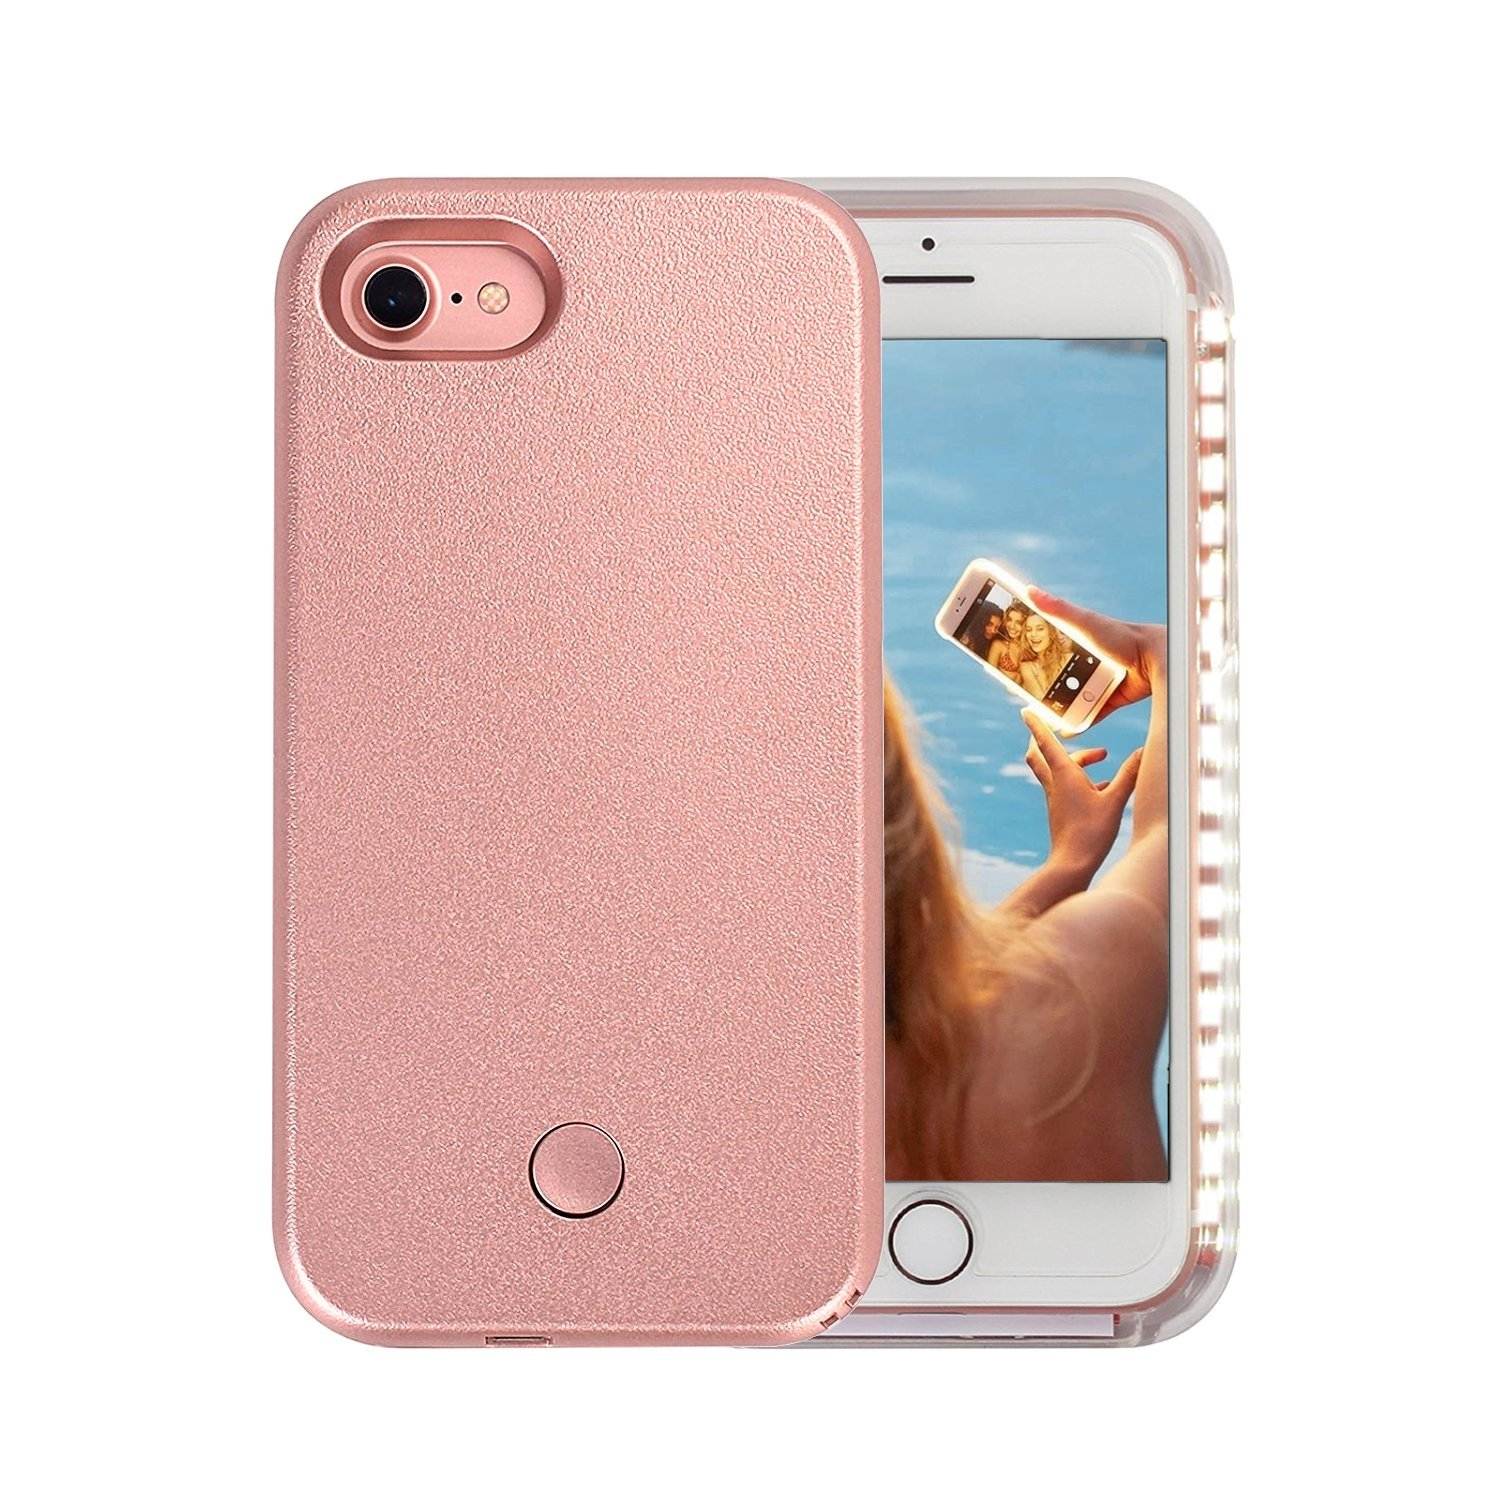 Wellerly iPhone 7 Case, iPhone 8 case, LED Illuminated Selfie Light Cell Phone Case Cover [Rechargeable] Light Up Luminous Selfie Flashlight Case for iPhone 7 / iPhone 8 4.7inch (Rose Gold) Lightcase-Rose-W1